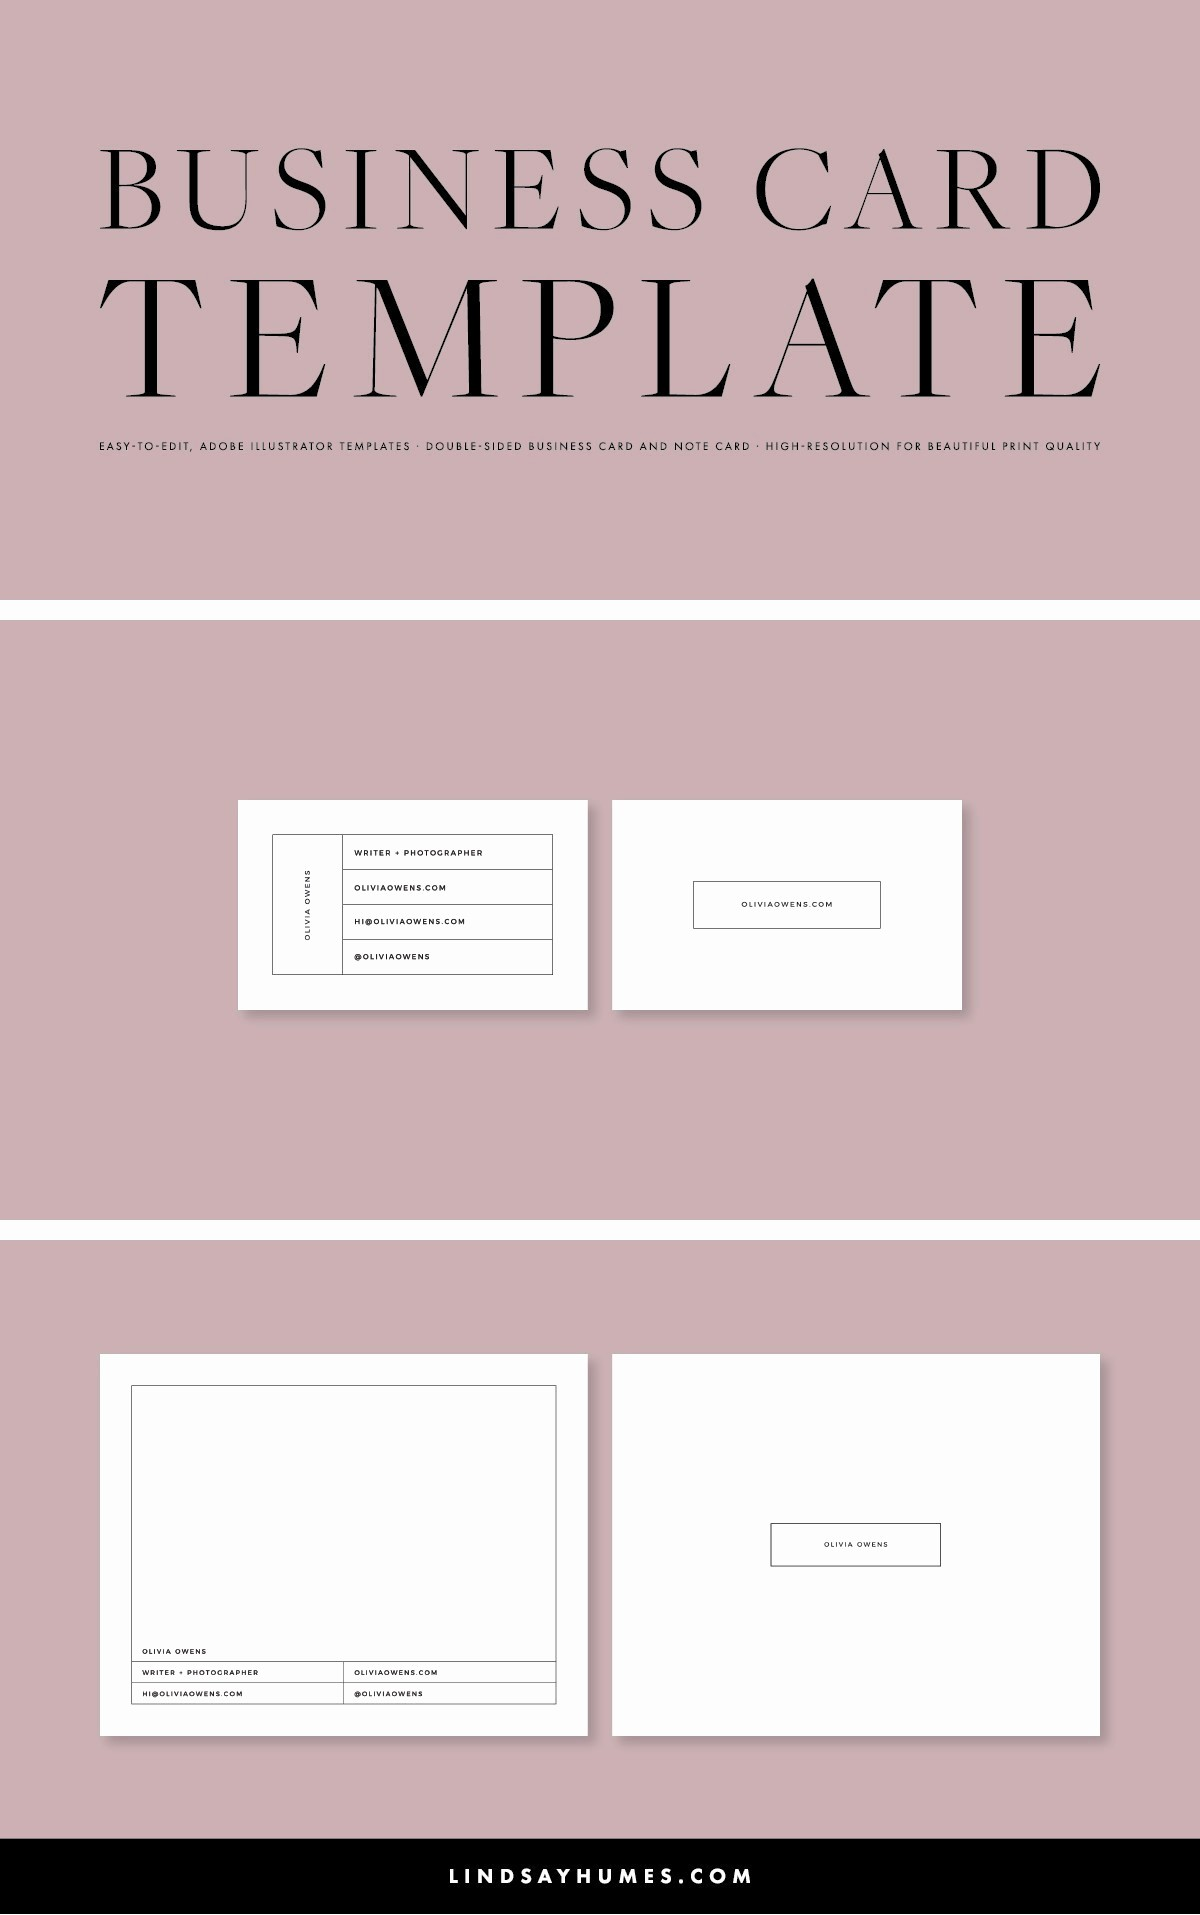 double sided business cards template word inspirational business card templates for word awesome how to design business